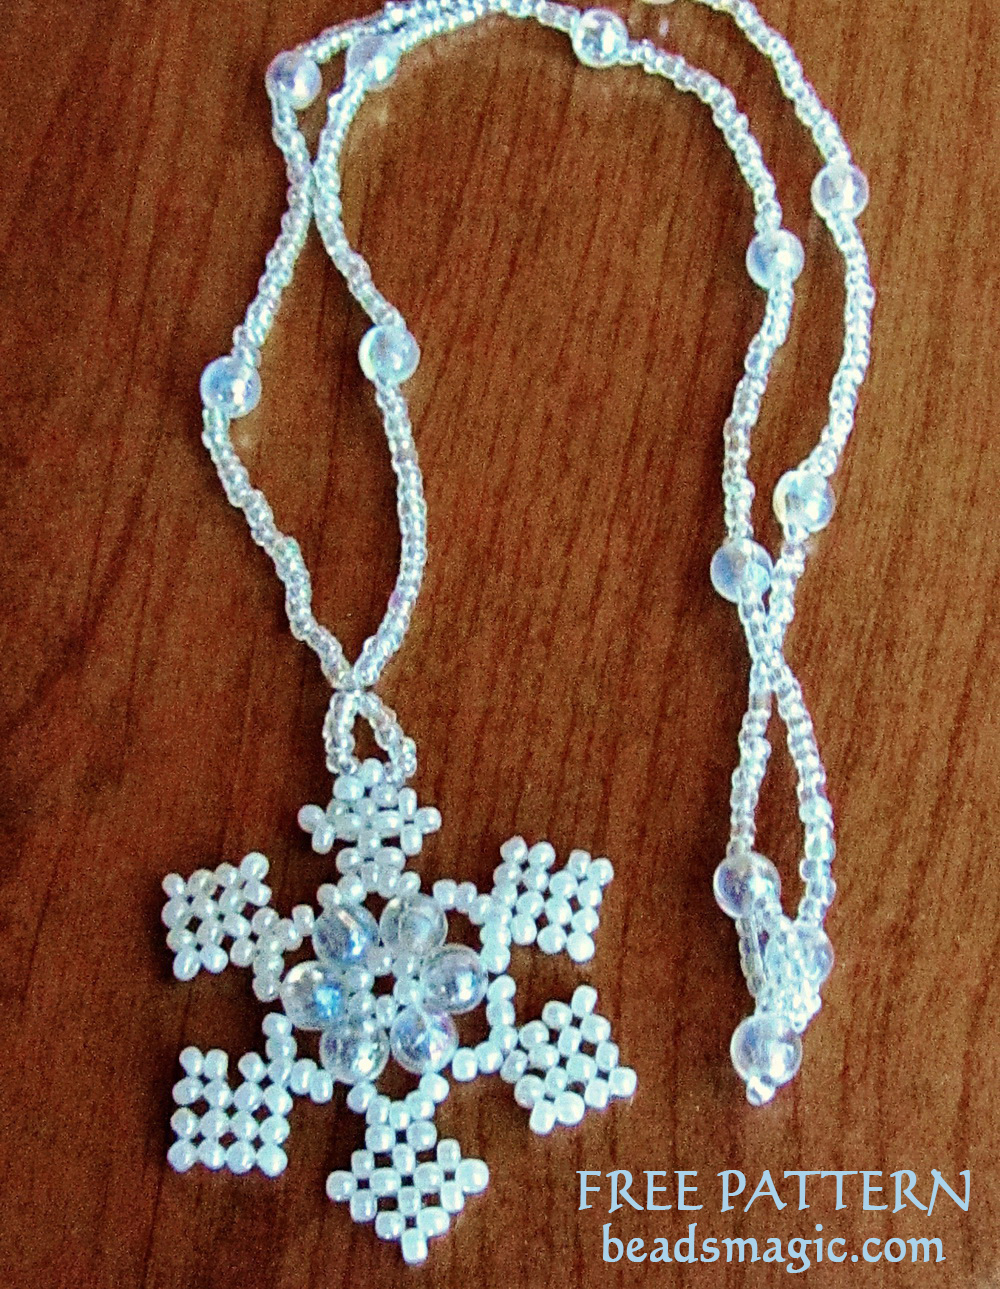 Free pattern for Snowflake pendant